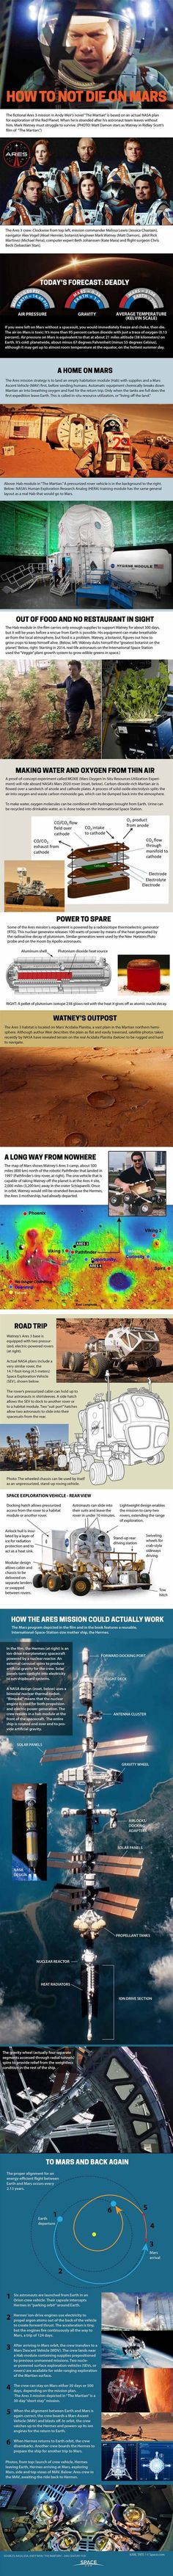 """Surviving 'The Martian': How to Stay Alive on Mars (Infographic) By Karl Tate, Infographics Artist     9/30/15 Comparison of """"The Martian"""" film with an actual NASA plan for Mars."""